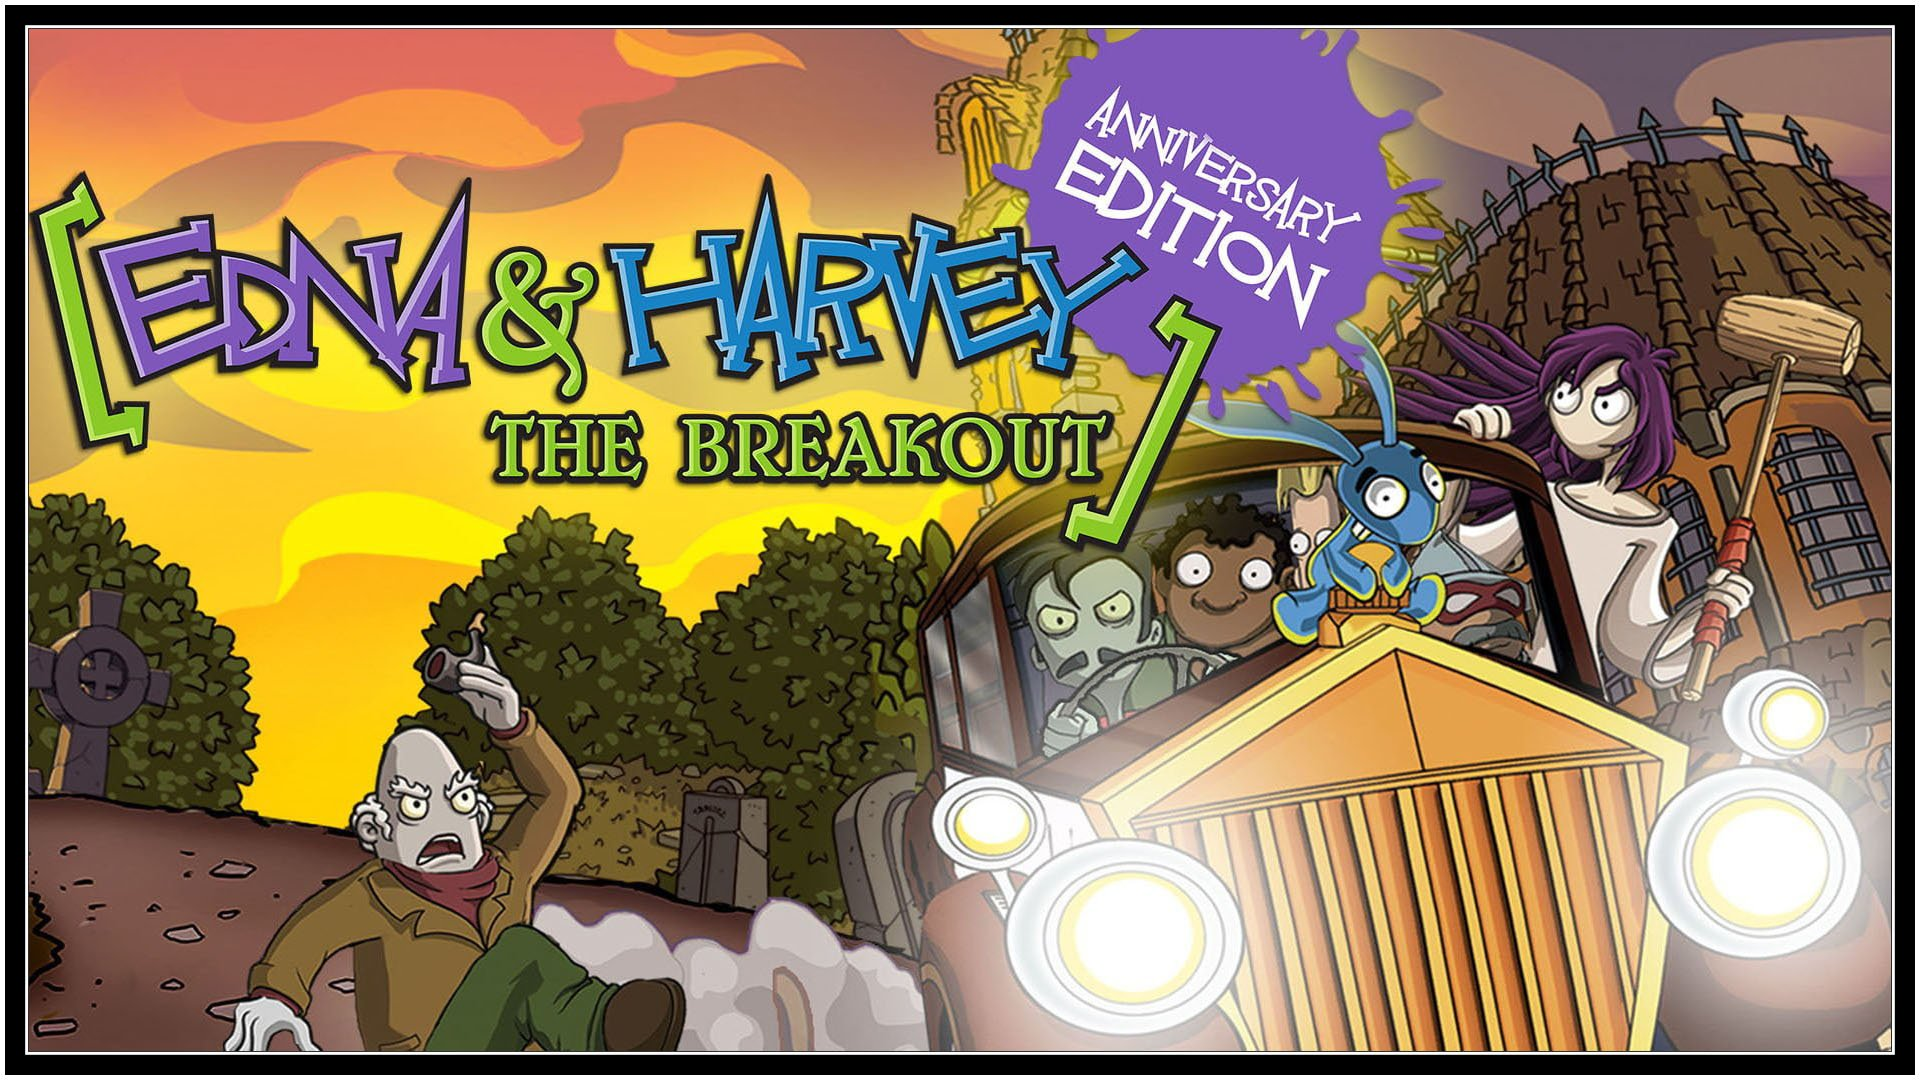 Edna And Harvey The Breakout PC Fi3